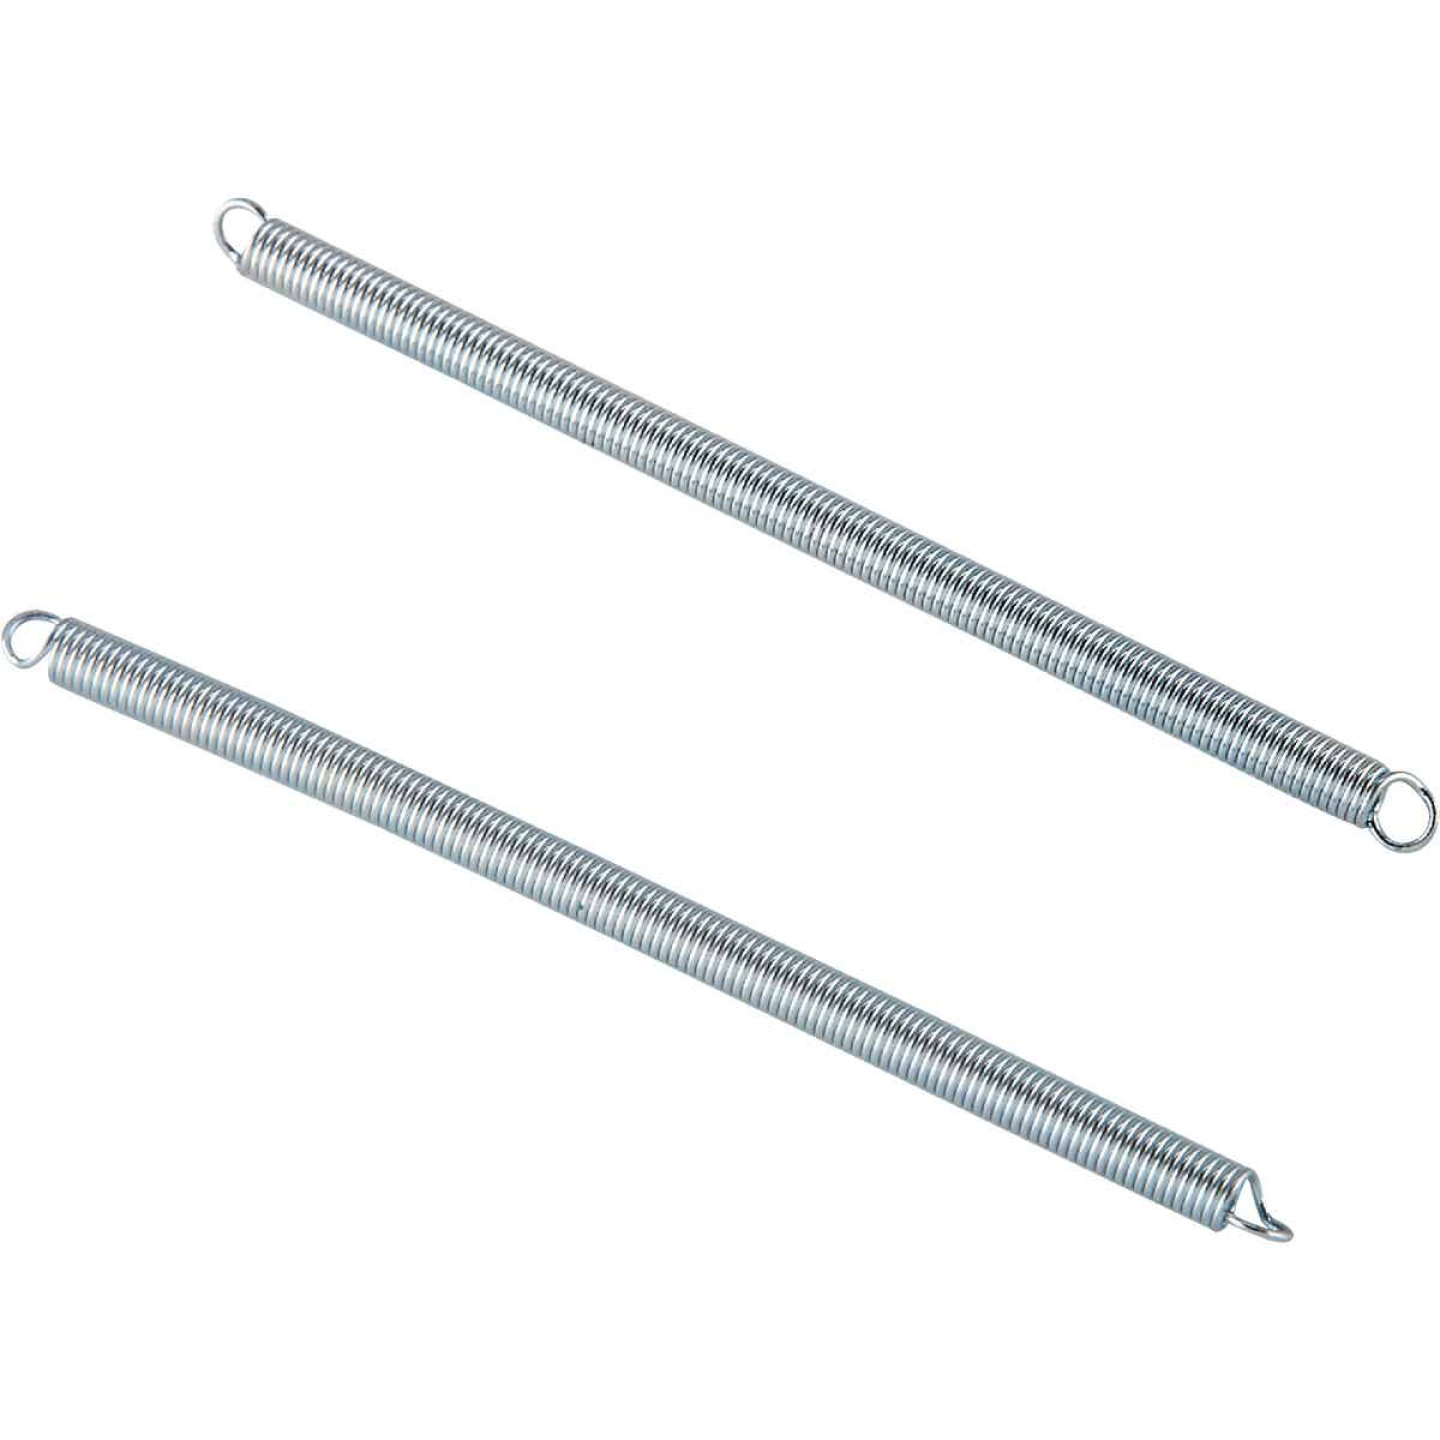 Century Spring 4 In. x 3/8 In. Extension Spring (2 Count) Image 1